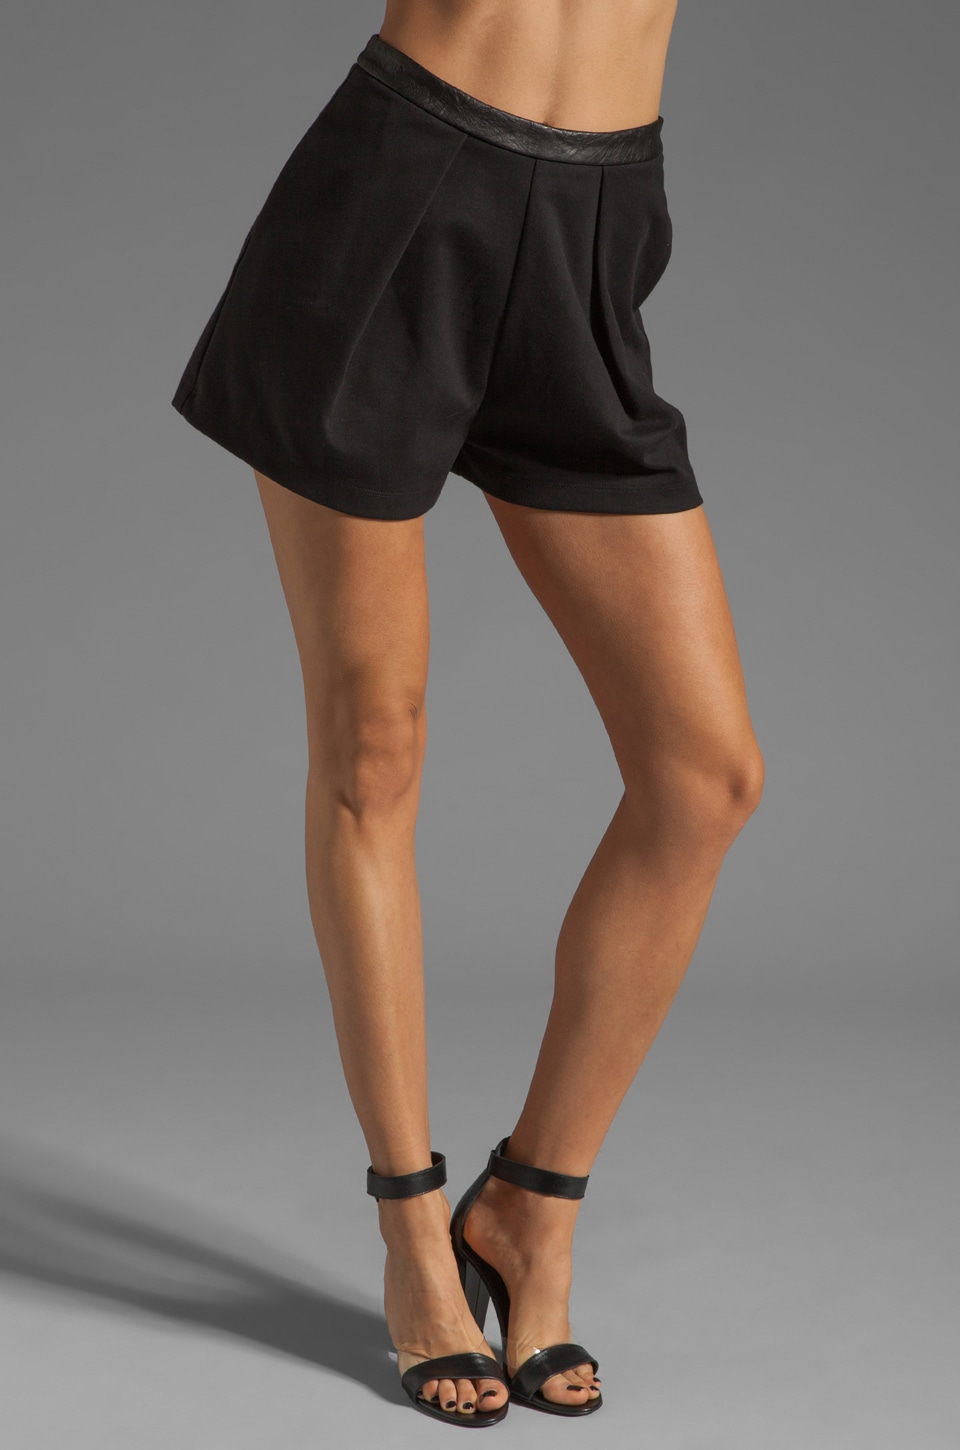 Heather Pleated Short in Black